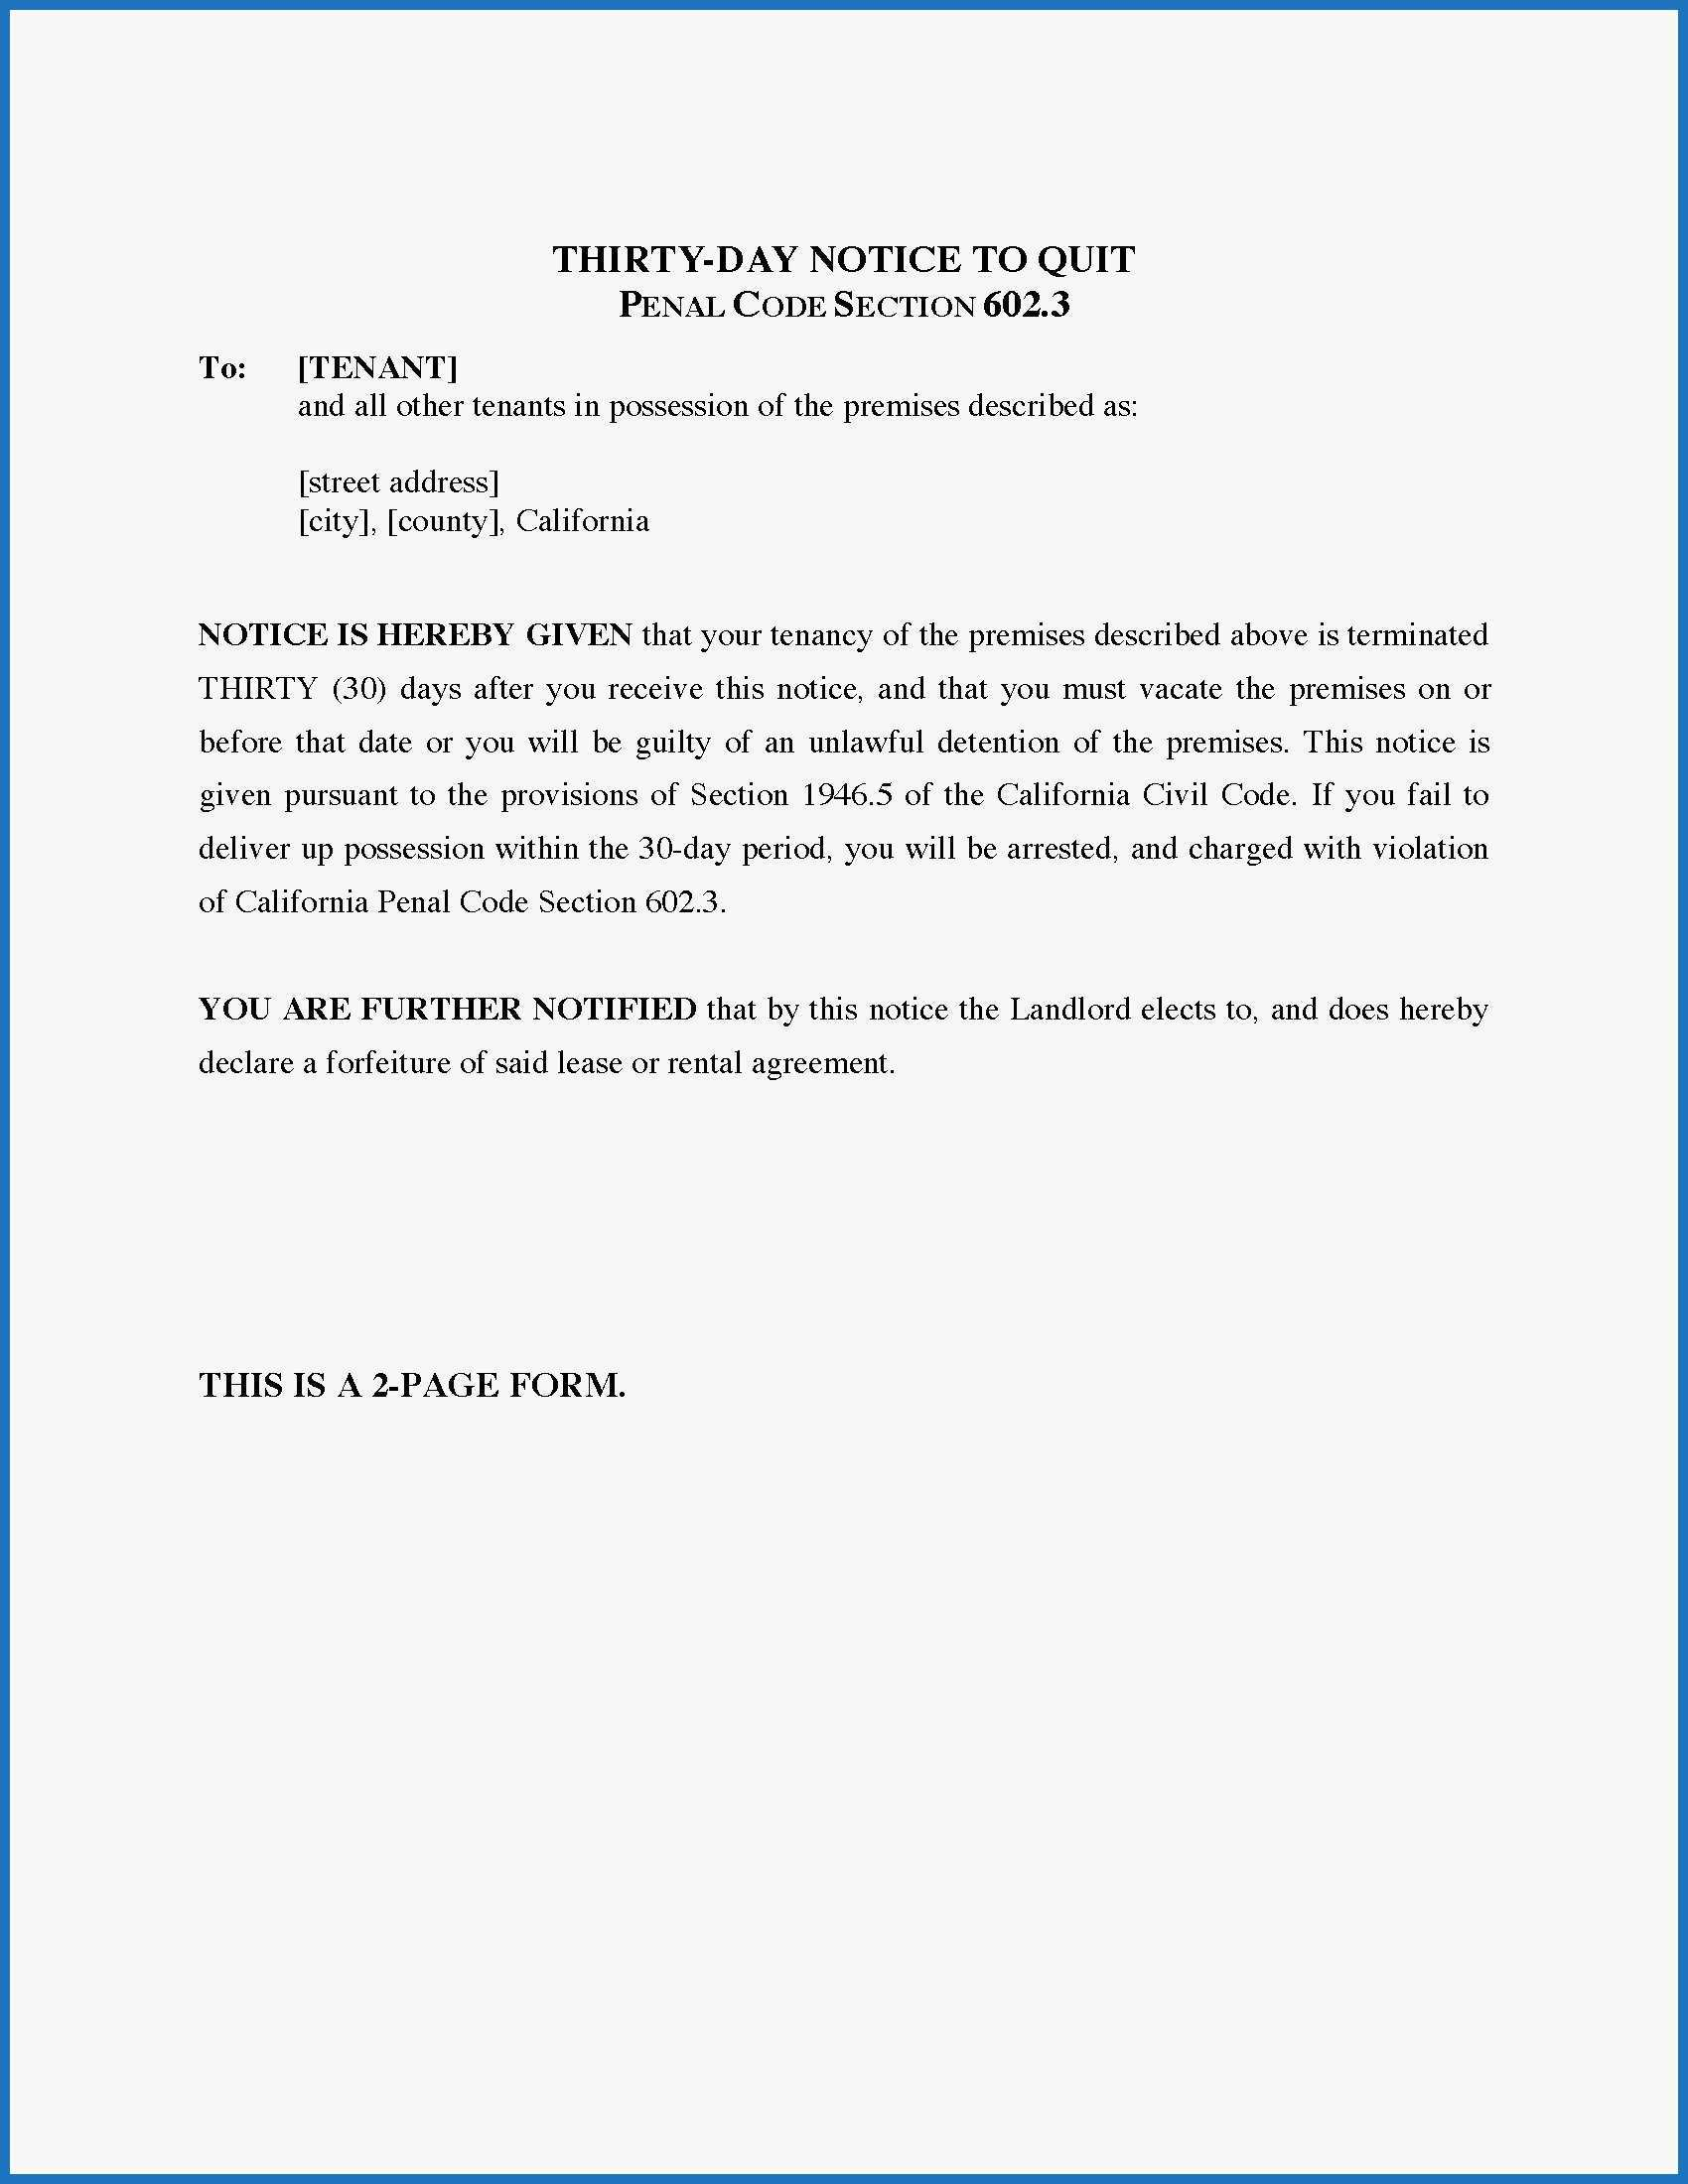 30 Day Notice To Landlord California Template Amazing California 30 Day Notice To Quit Under Penal Code Section